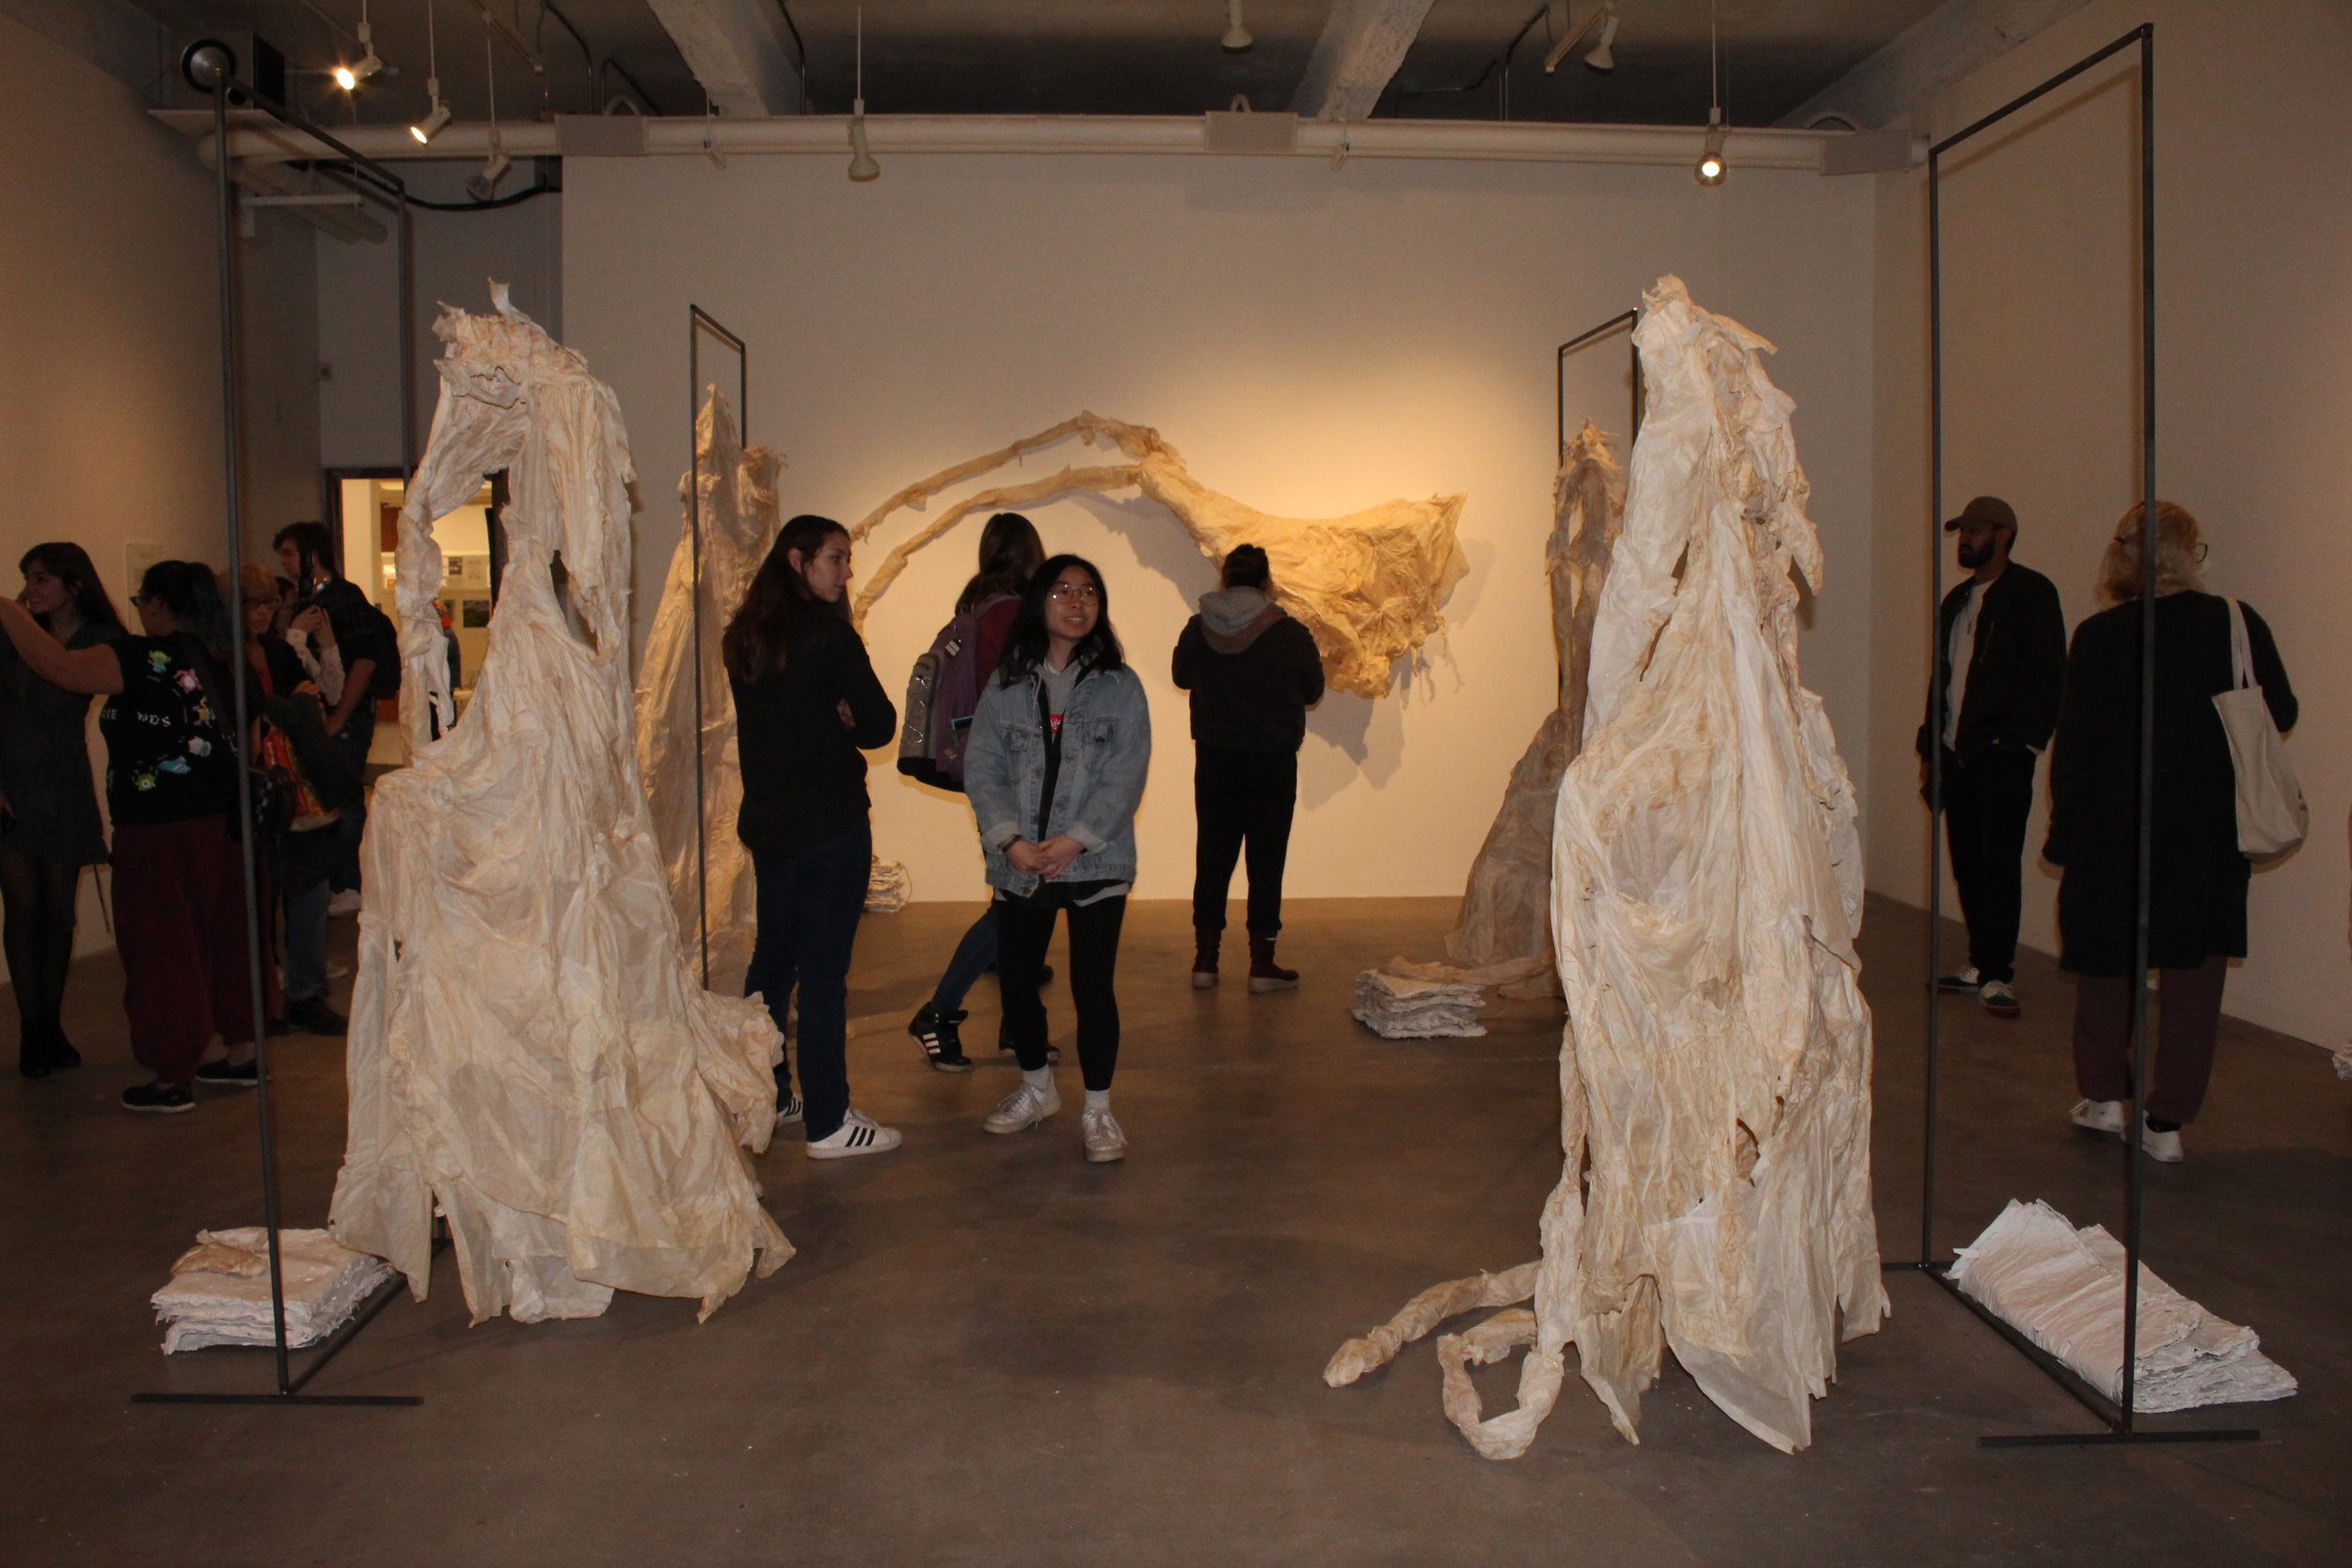 The VAIS Gallery hosts a solo exhibition by Isabella Saraceni. The work is a reflection on the erasure and representation of the female body throughout history. It will be shown until April 19, 2019. (Rachel Santostefano/The Daily Campus)